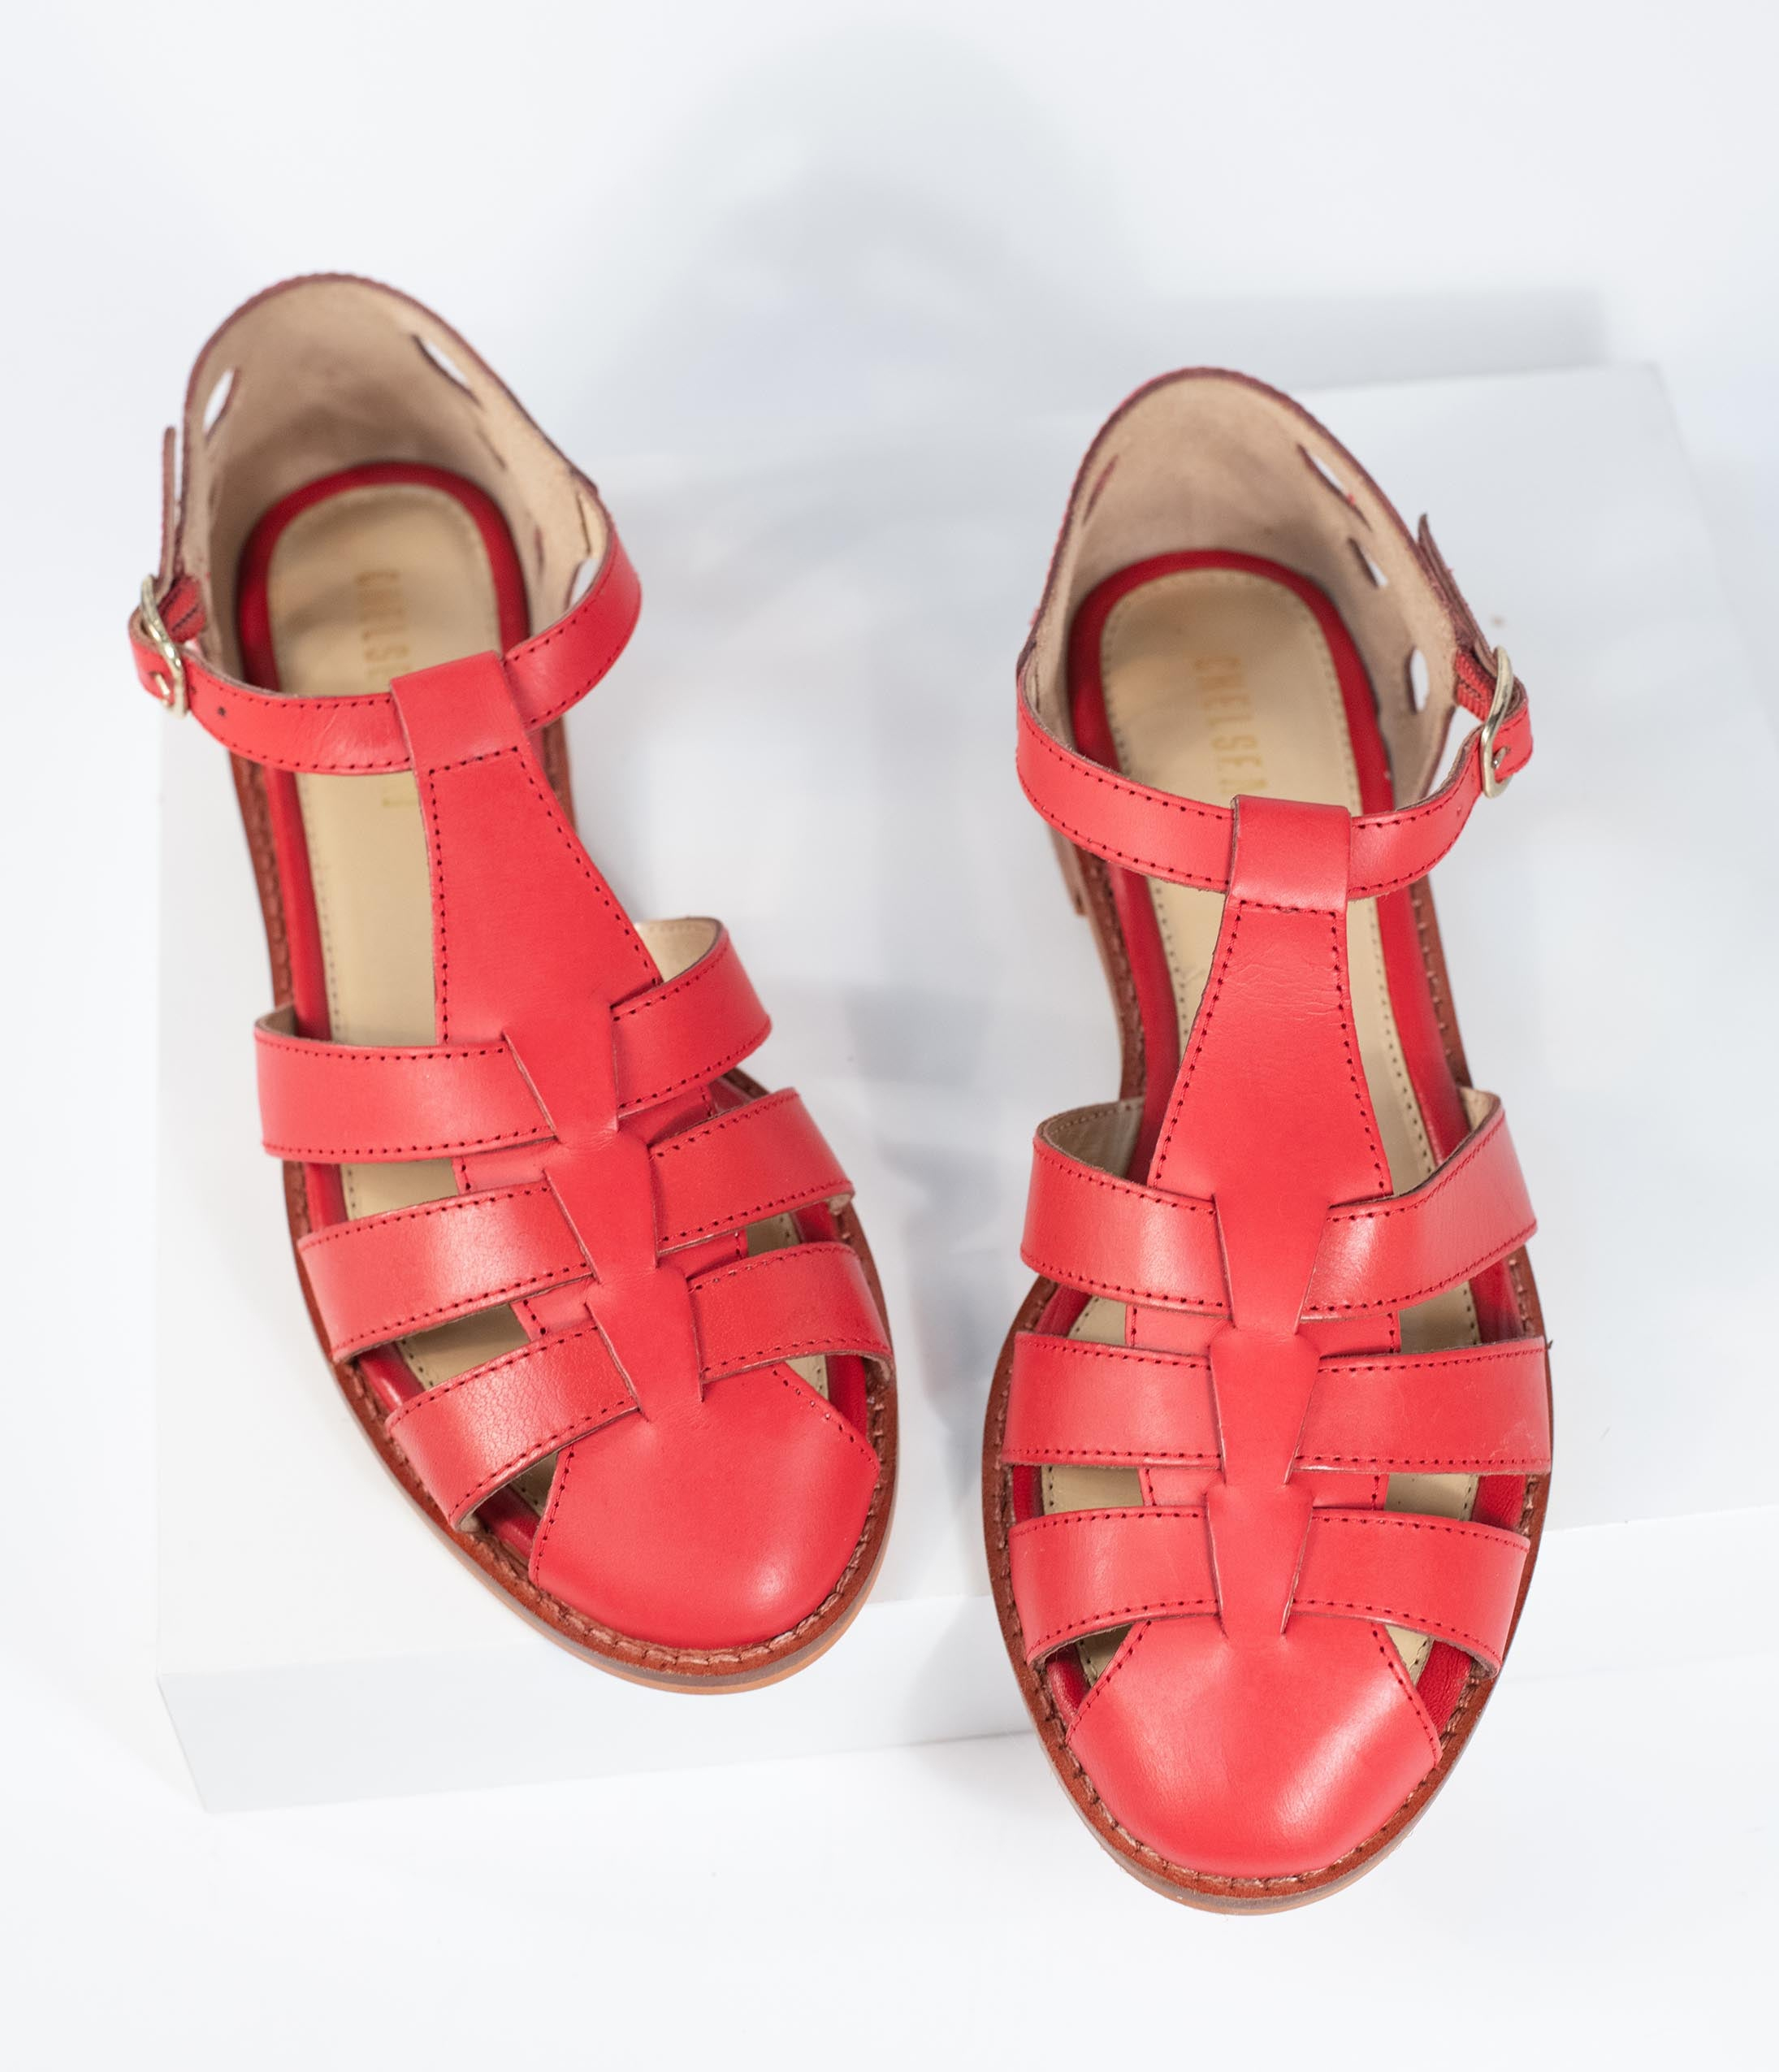 1940s Women's Footwear Chelsea Crew Red Leather Carina Sandals $86.00 AT vintagedancer.com